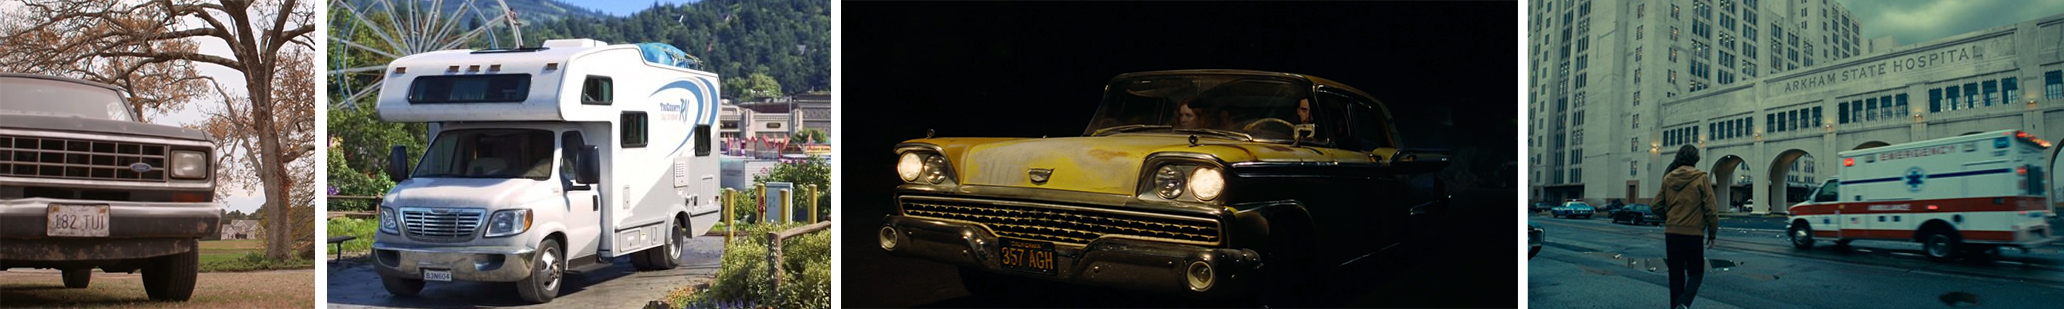 Ford, Concave brand tracking, product placement, brands, movies, entertainment marketing, branded integration, integration marketing, analysis, valuation, metrics, measurement, toy story 4, avengers endgame, once upon a time in hollywood, joker